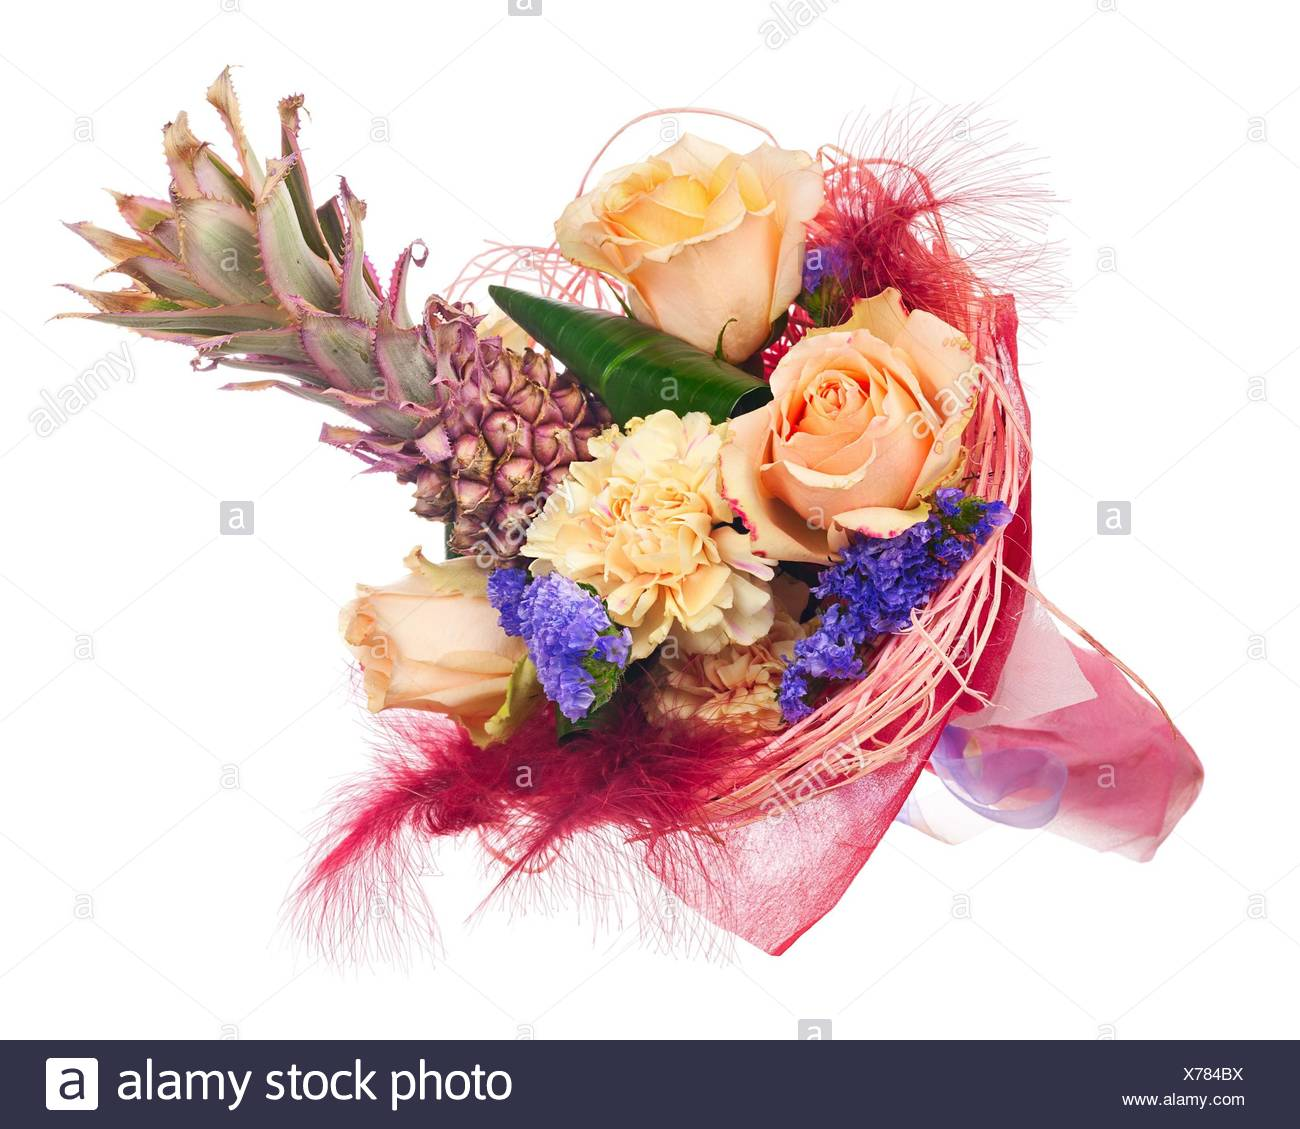 Beautiful Bouquet Of Roses Carnations Decorative Pineapple And